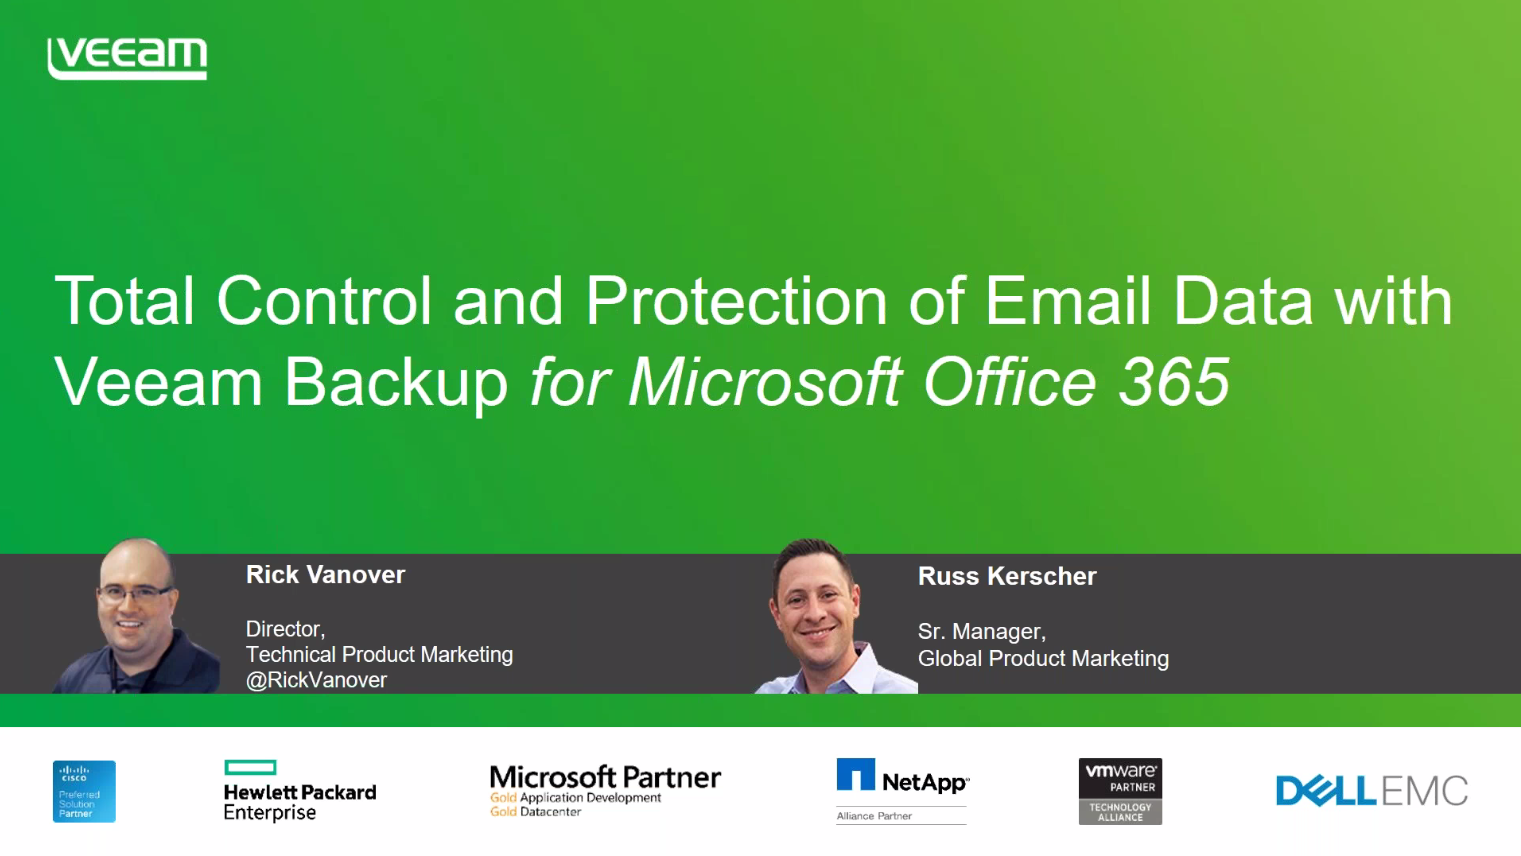 Total control and protection of email data with Veeam Backup for Microsoft Office 365